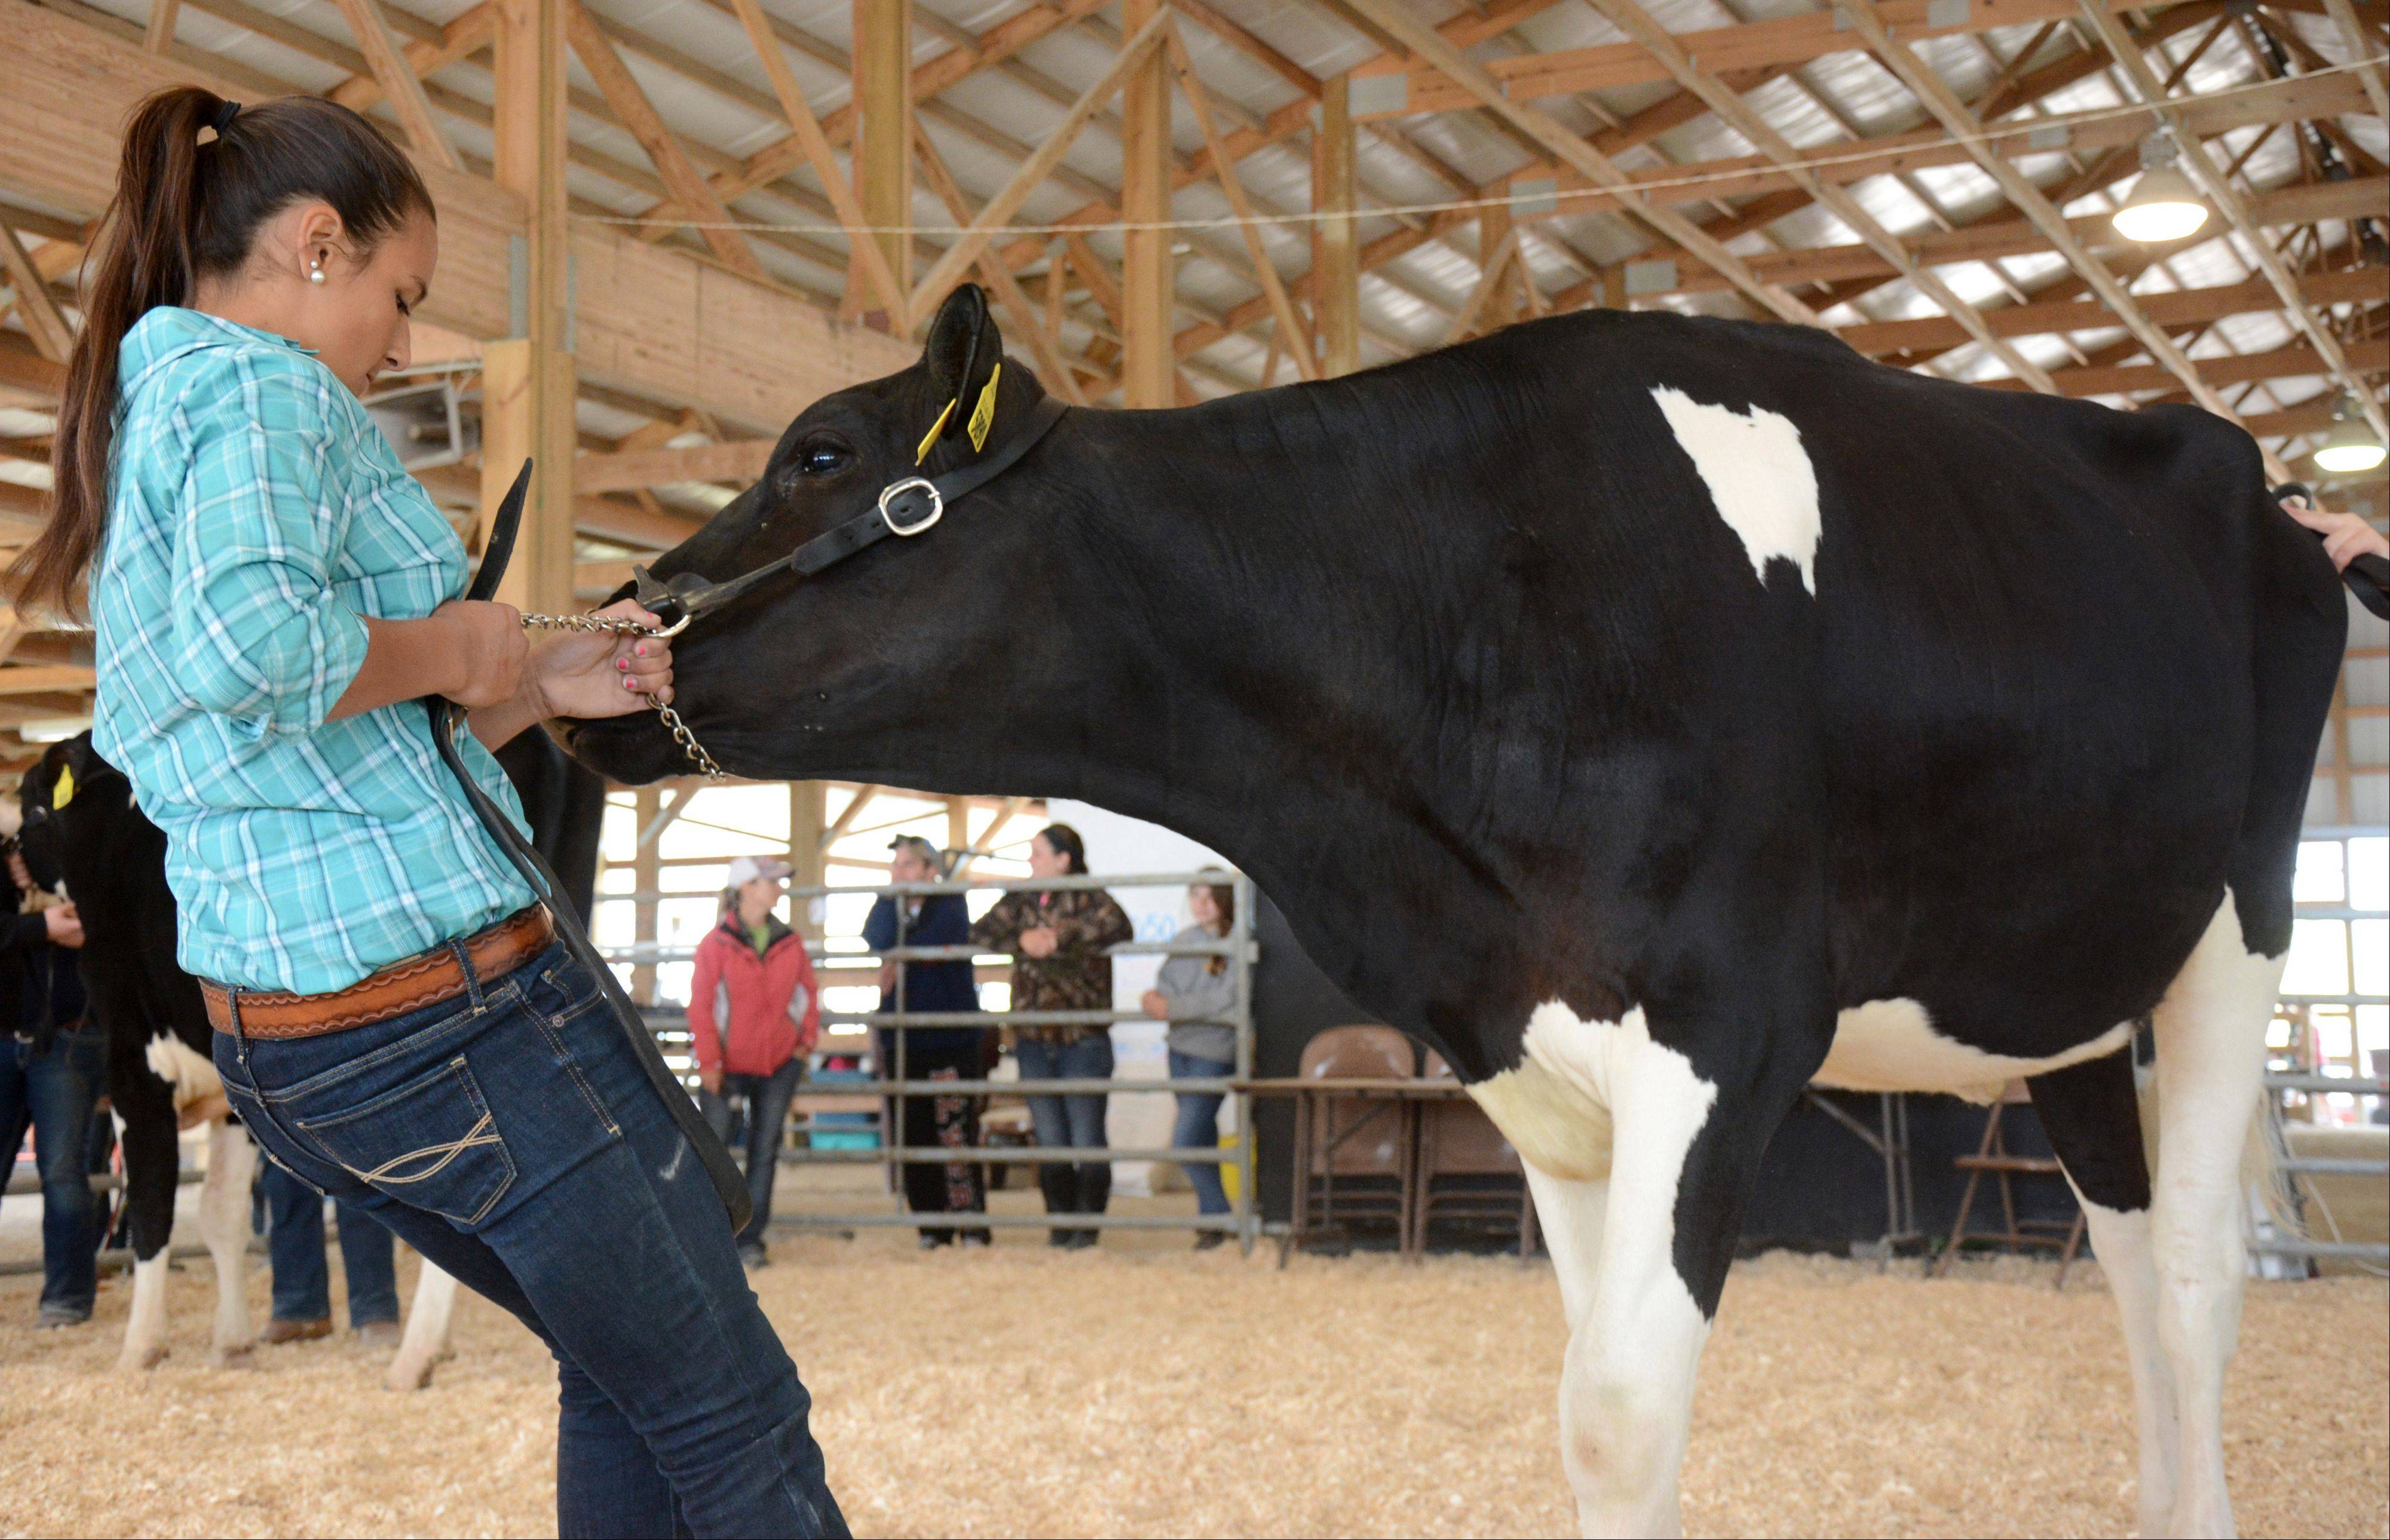 Cassidy Price, of Golf, motivates her dairy cow to walk during the Master Showman competition Sunday at the Lake County Fair.